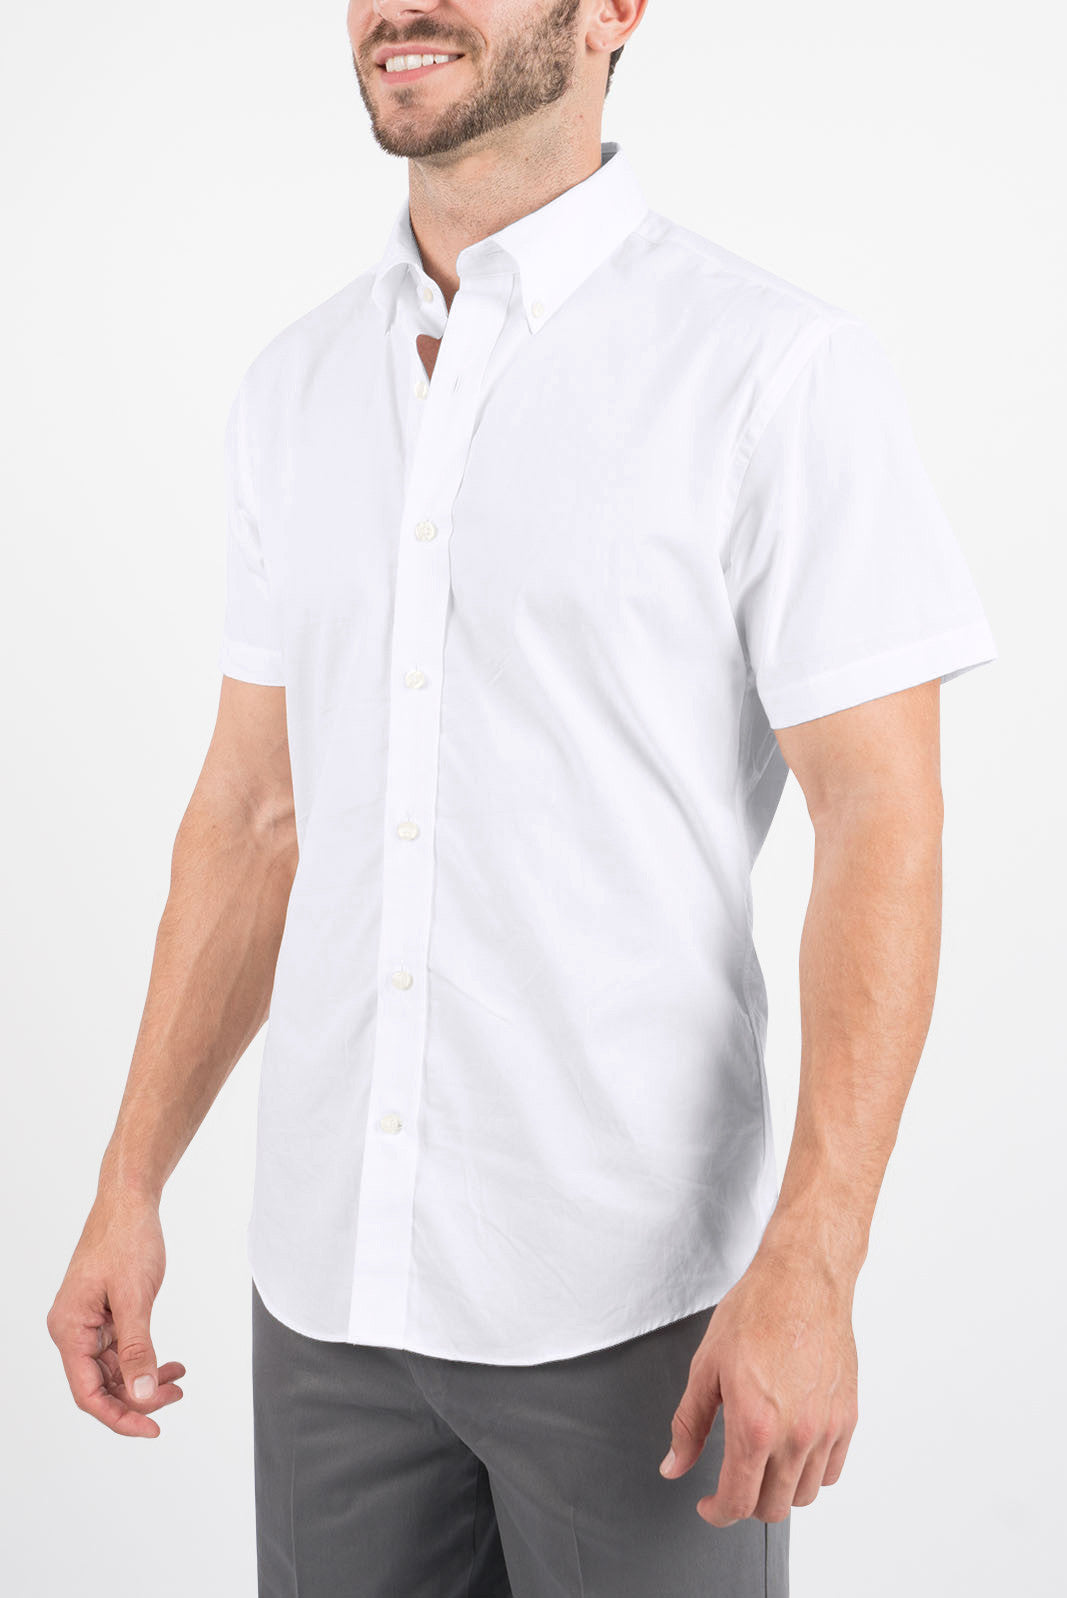 White Oxford: Semi-Spread Collar, Short Sleeve